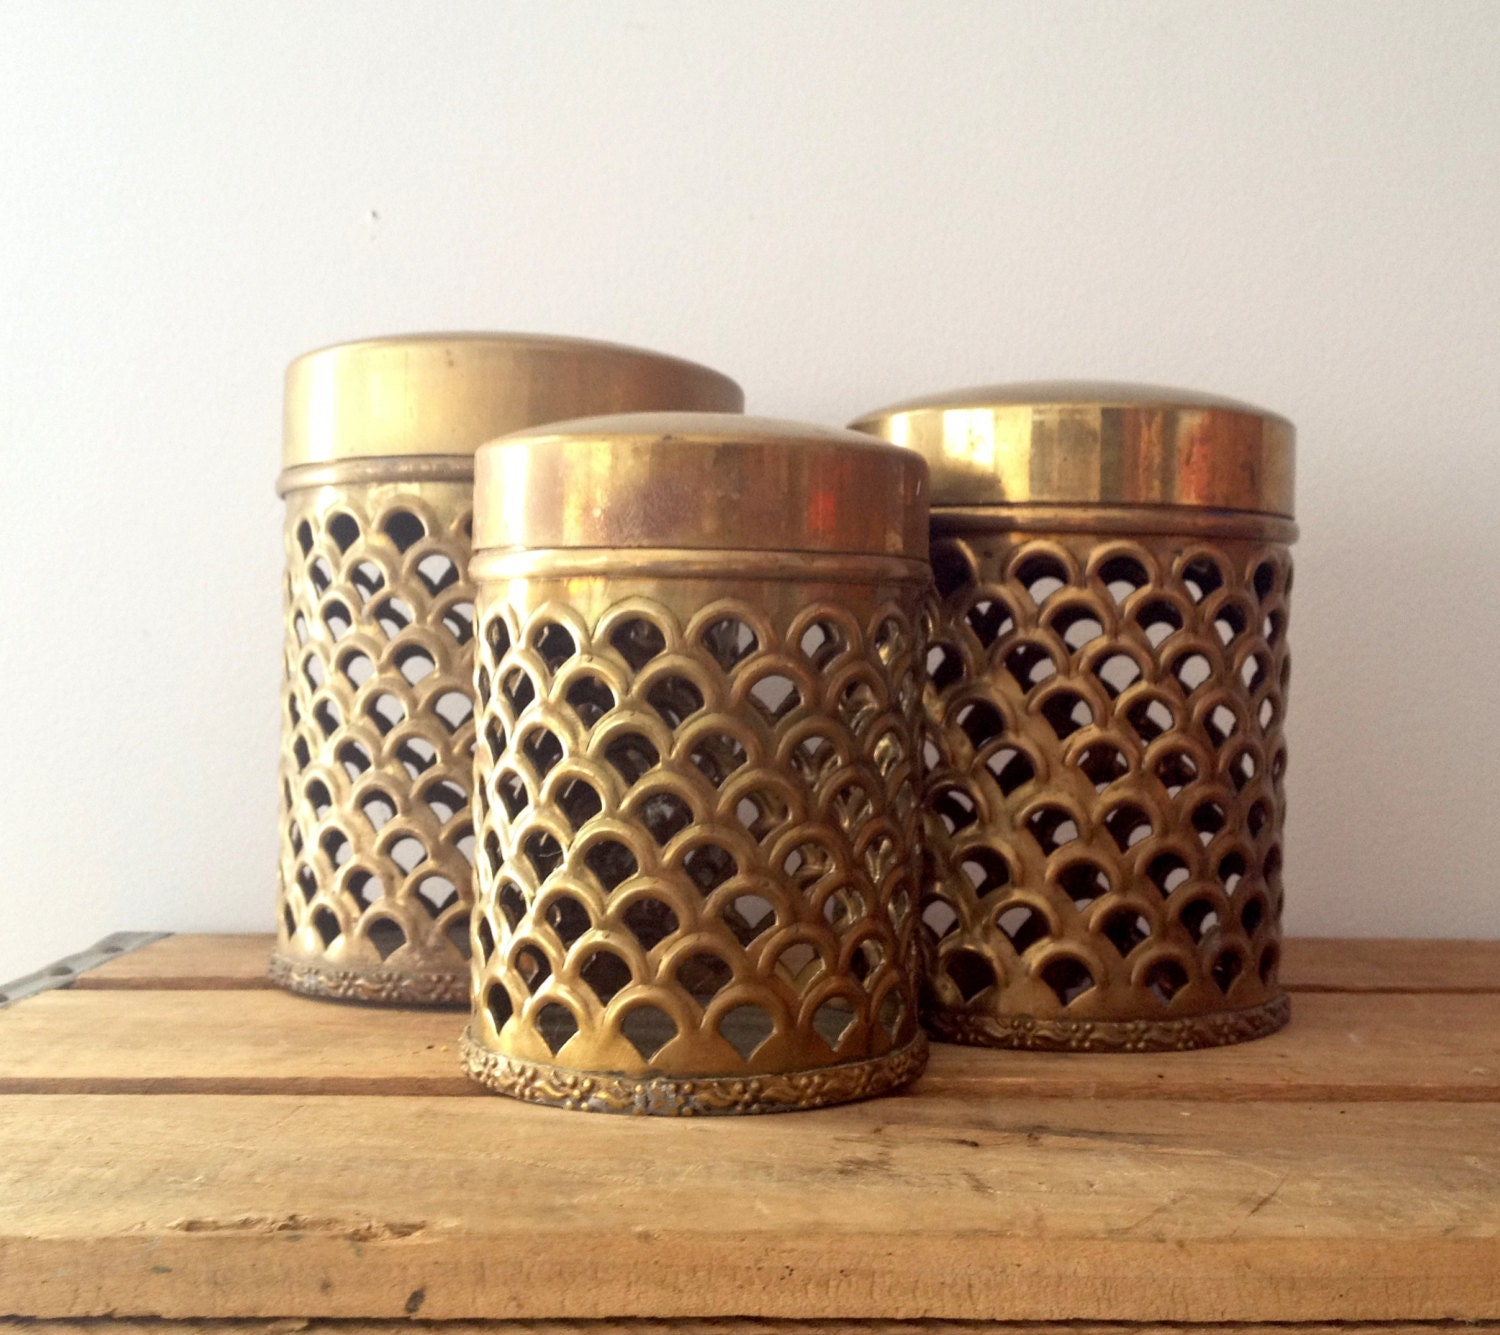 Brass containers fish scale cut out design ornate solid for Fish scale coke cut